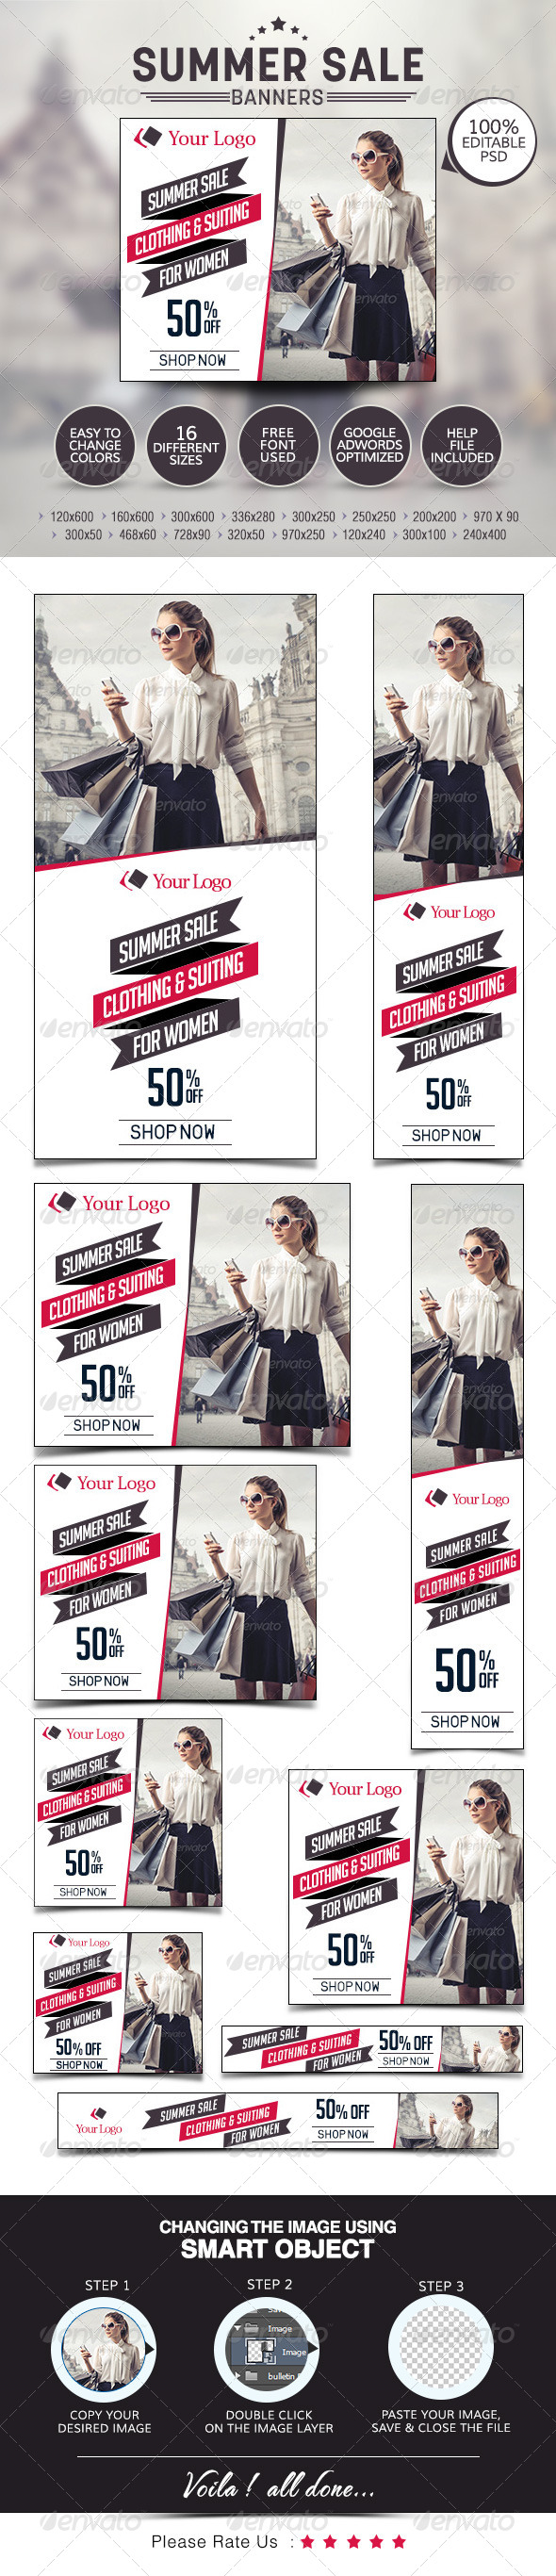 GraphicRiver Summer Sale Banners 7678855